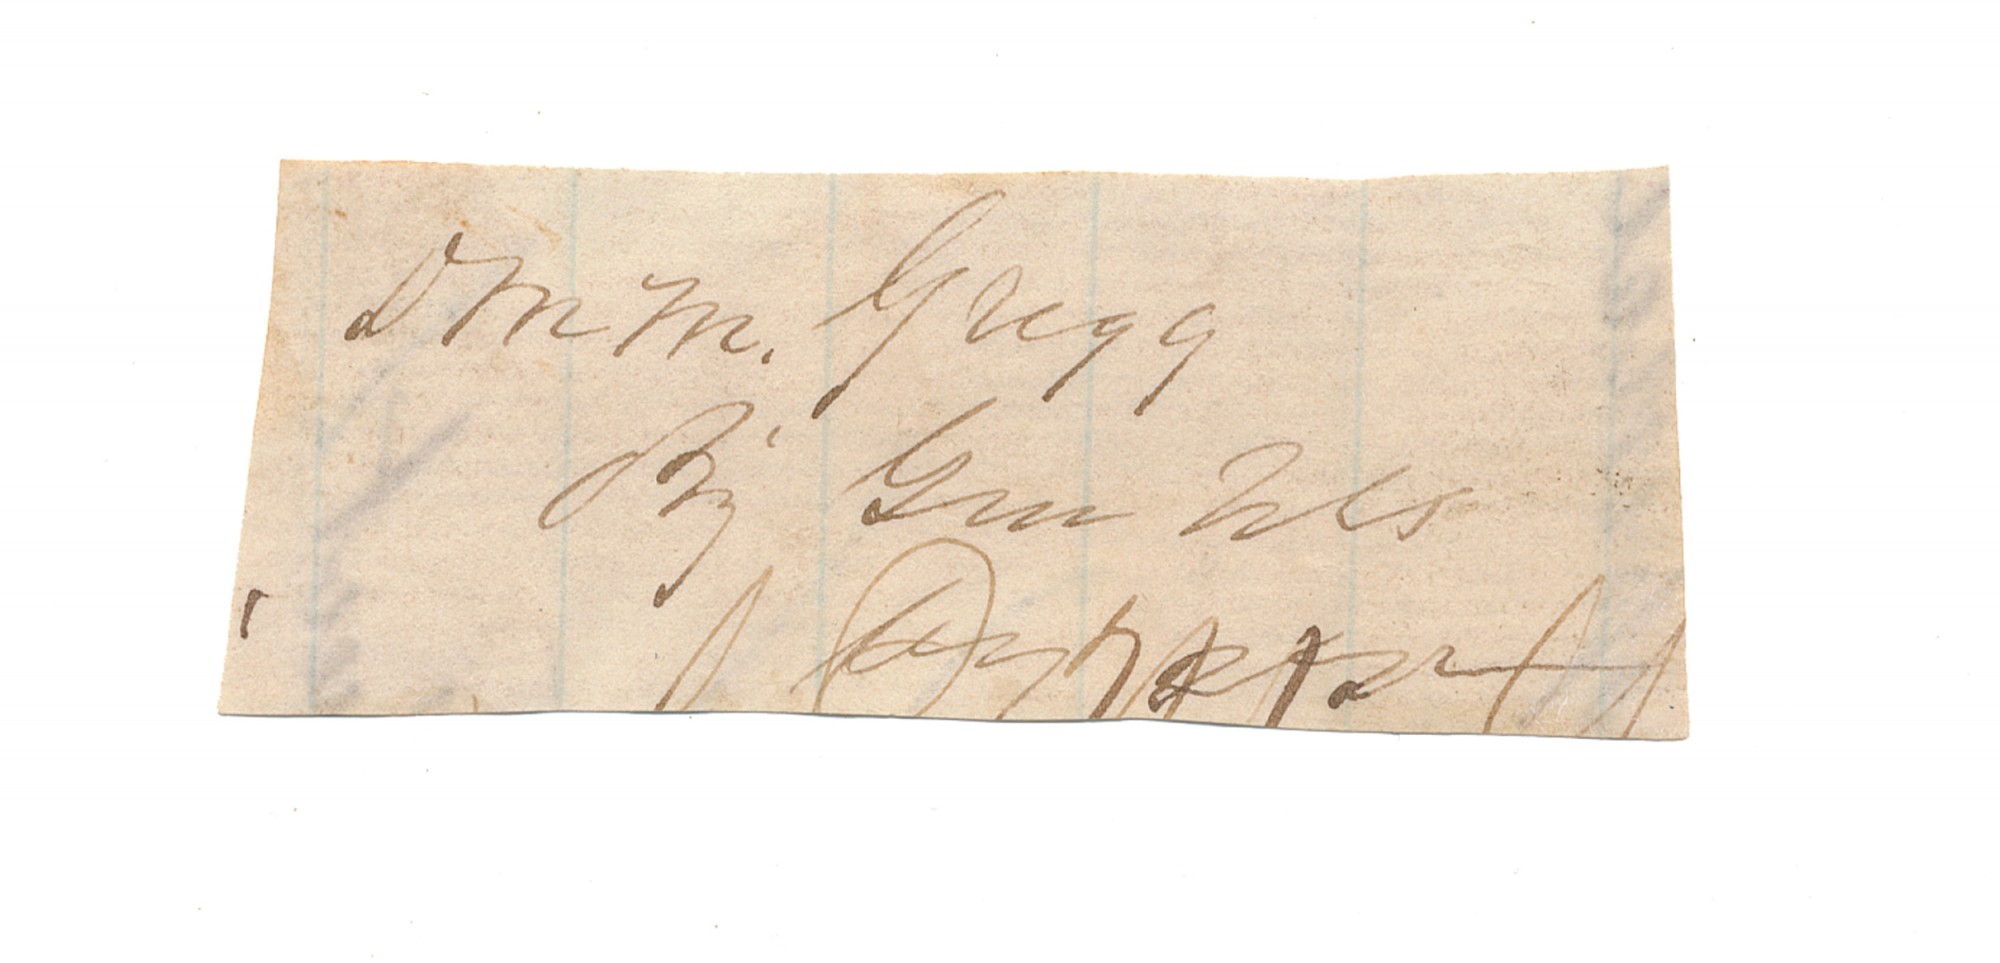 CLIPPED SIGNATURE OF DAVID GREGG